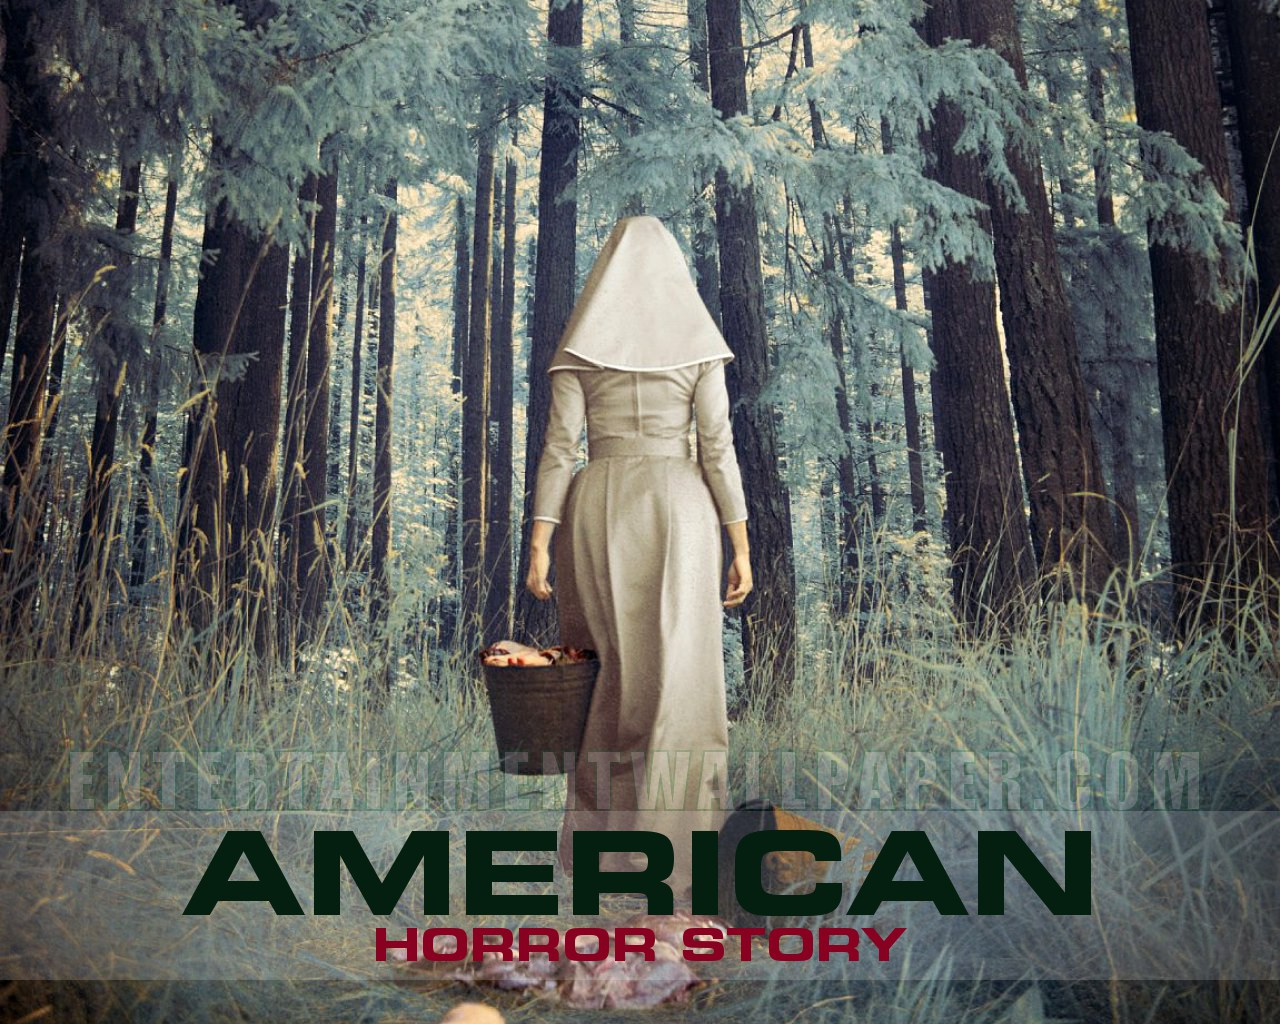 American Horror Story achtergrond